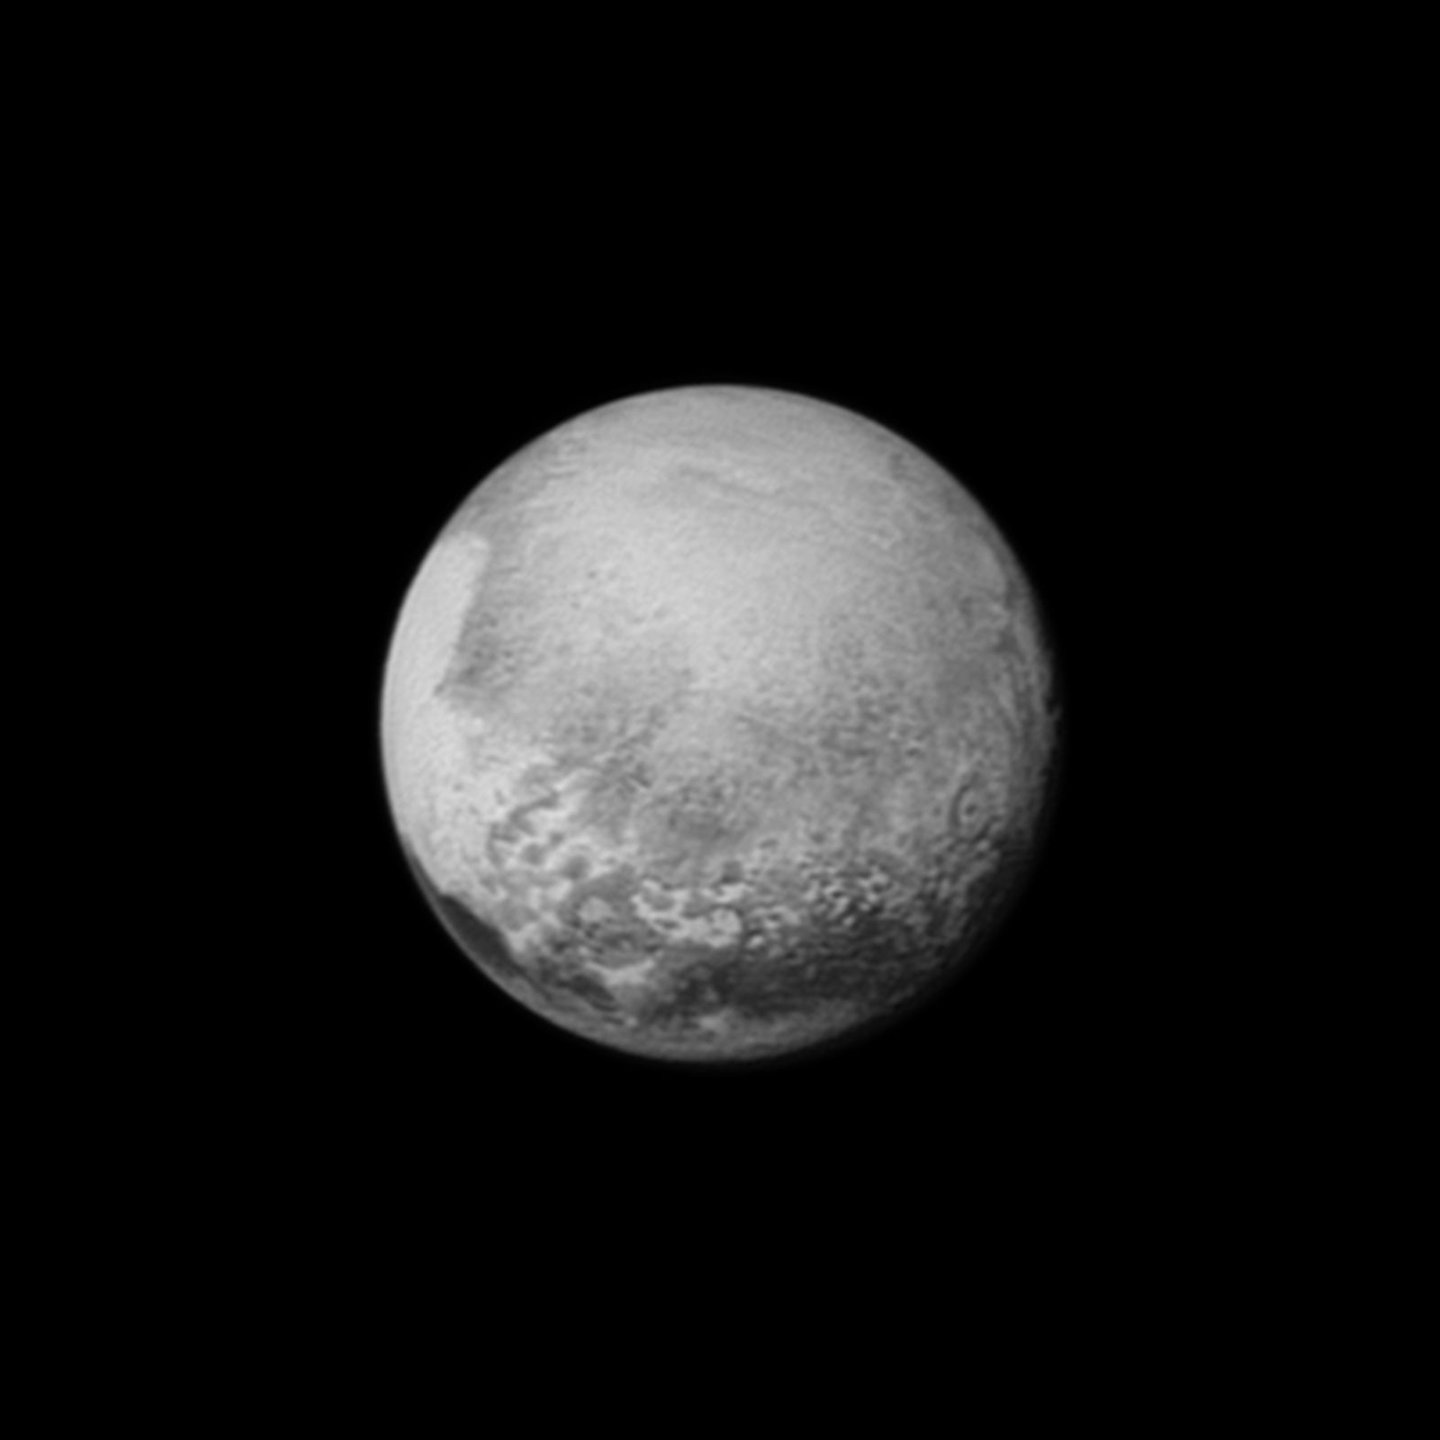 New Horizons estava a 2,5 milhões de quilómetros de Plutão quando captou esta imagem a 12 de julho -  NASA/Johns Hopkins University Applied Physics Laboratory/Southwest Research Institute